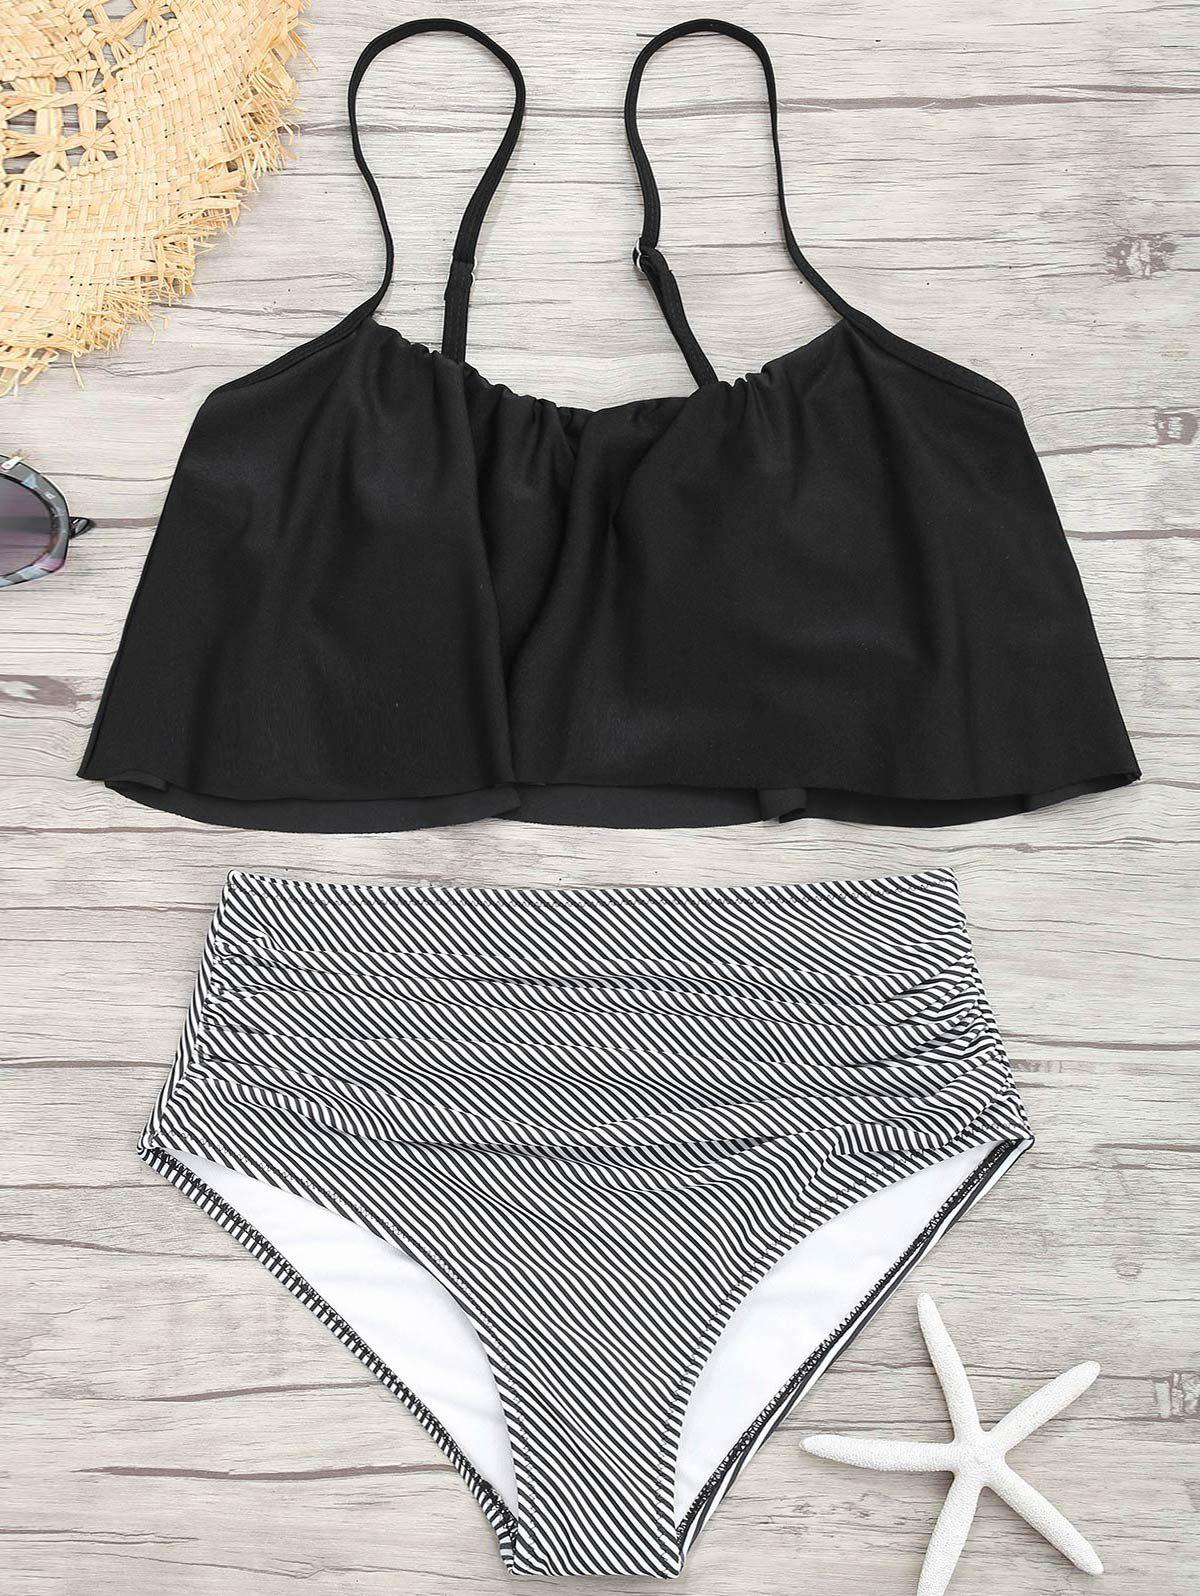 Spaghetti Strap Flounce Striped Bikini SetWOMEN<br><br>Size: S; Color: BLACK; Swimwear Type: Bikini; Bikini Type: Flounce Bikini; Gender: For Women; Material: Nylon,Spandex; Bra Style: Padded; Support Type: Wire Free; Neckline: Spaghetti Straps; Pattern Type: Striped; Waist: High Waisted; Elasticity: Elastic; Weight: 0.2900kg; Package Contents: 1 x Bra  1 x Bottom;